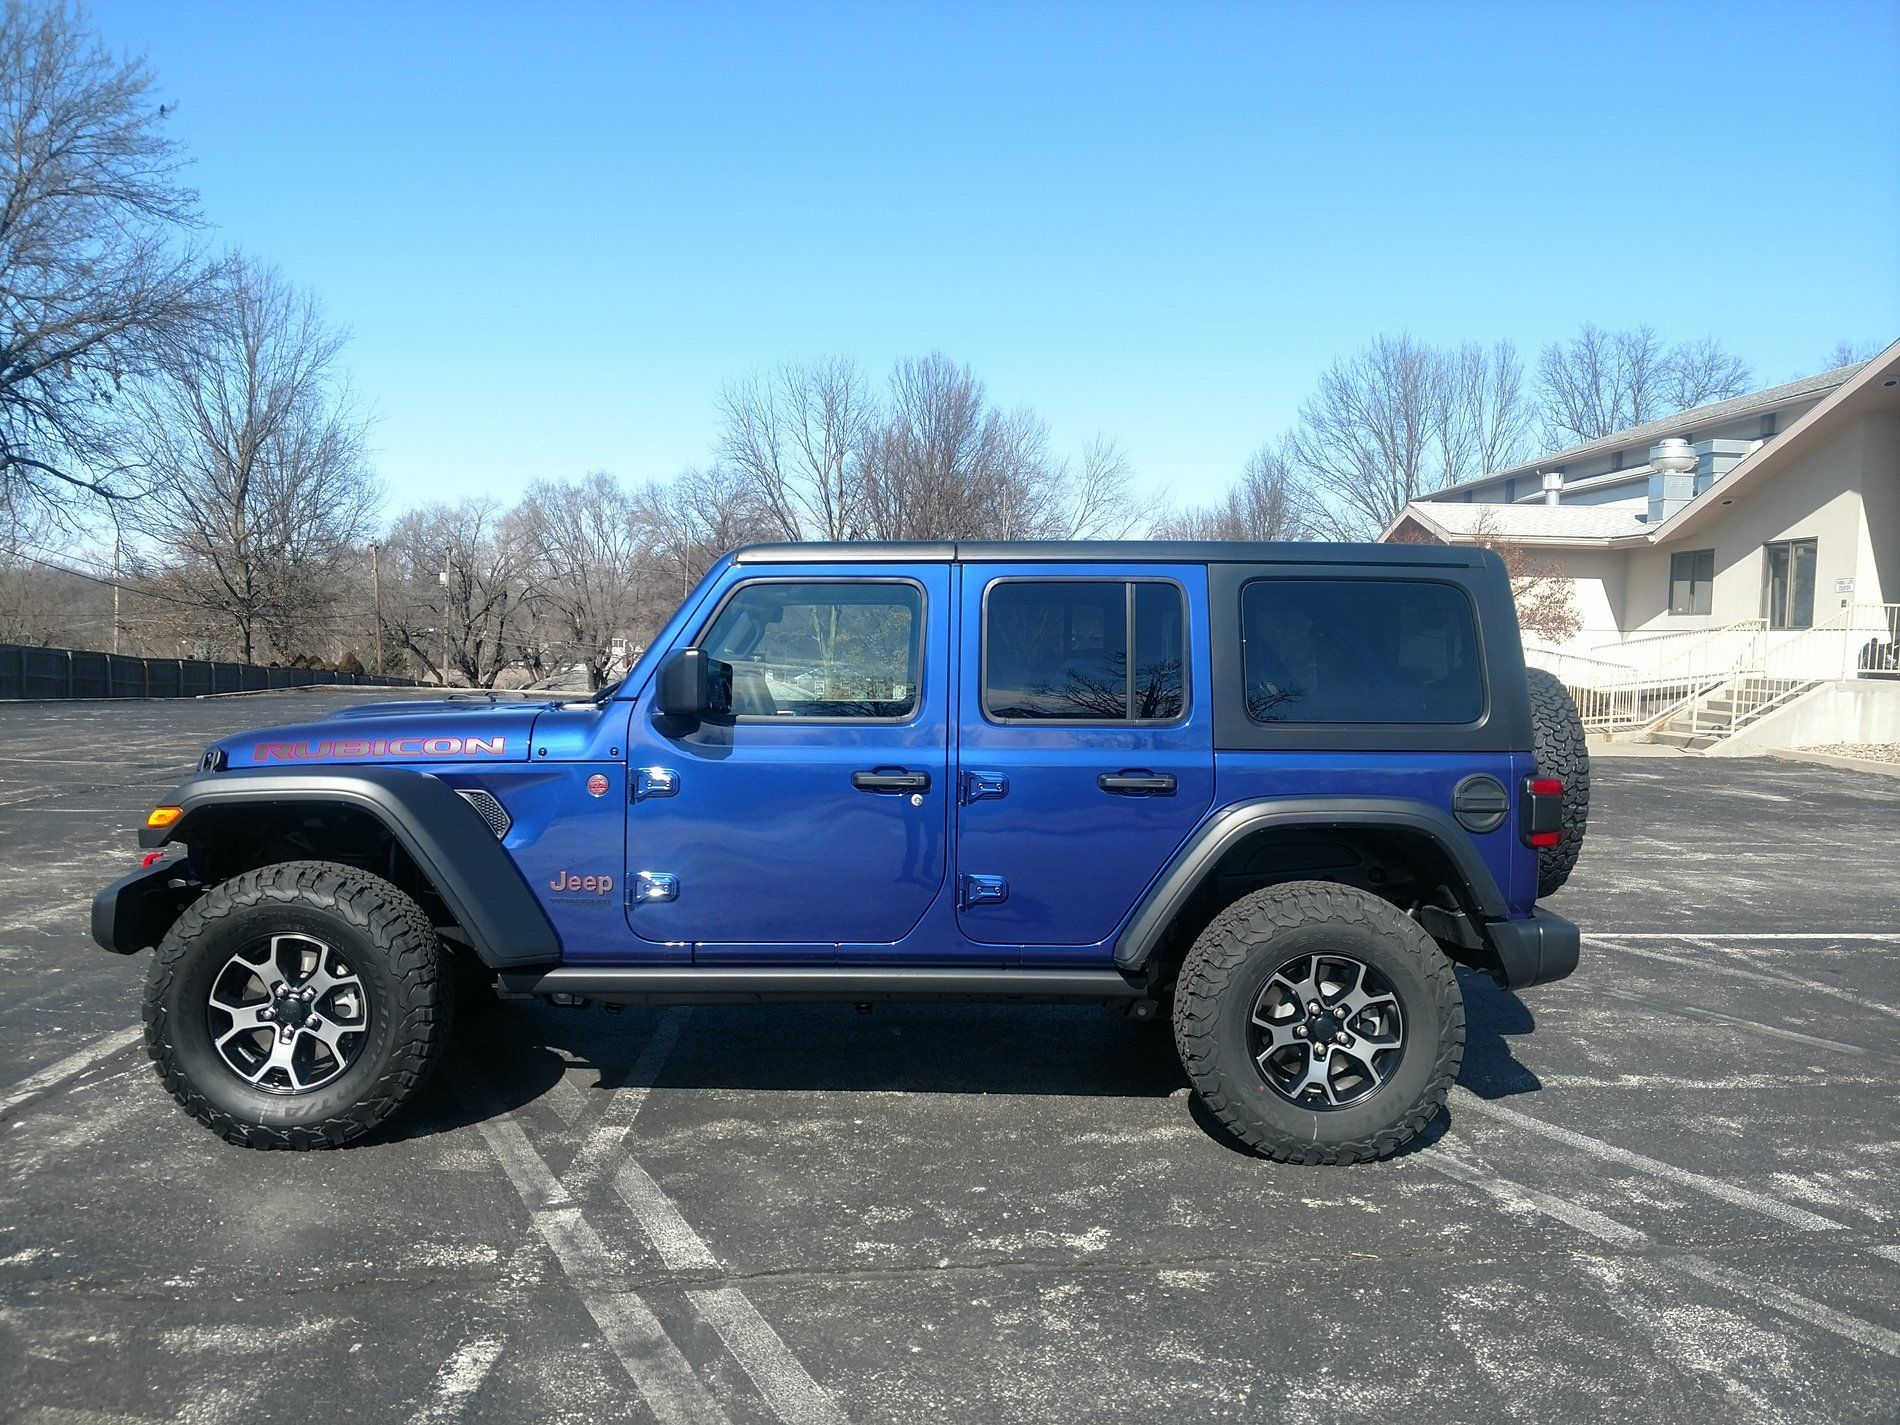 Bwwezvbcl furthermore Fortworth Tx further Af F Dfe Ec Ca C D also Helena Mt Back moreover Jeep. on jeep wrangler rubicon unlimited lj sahara edition